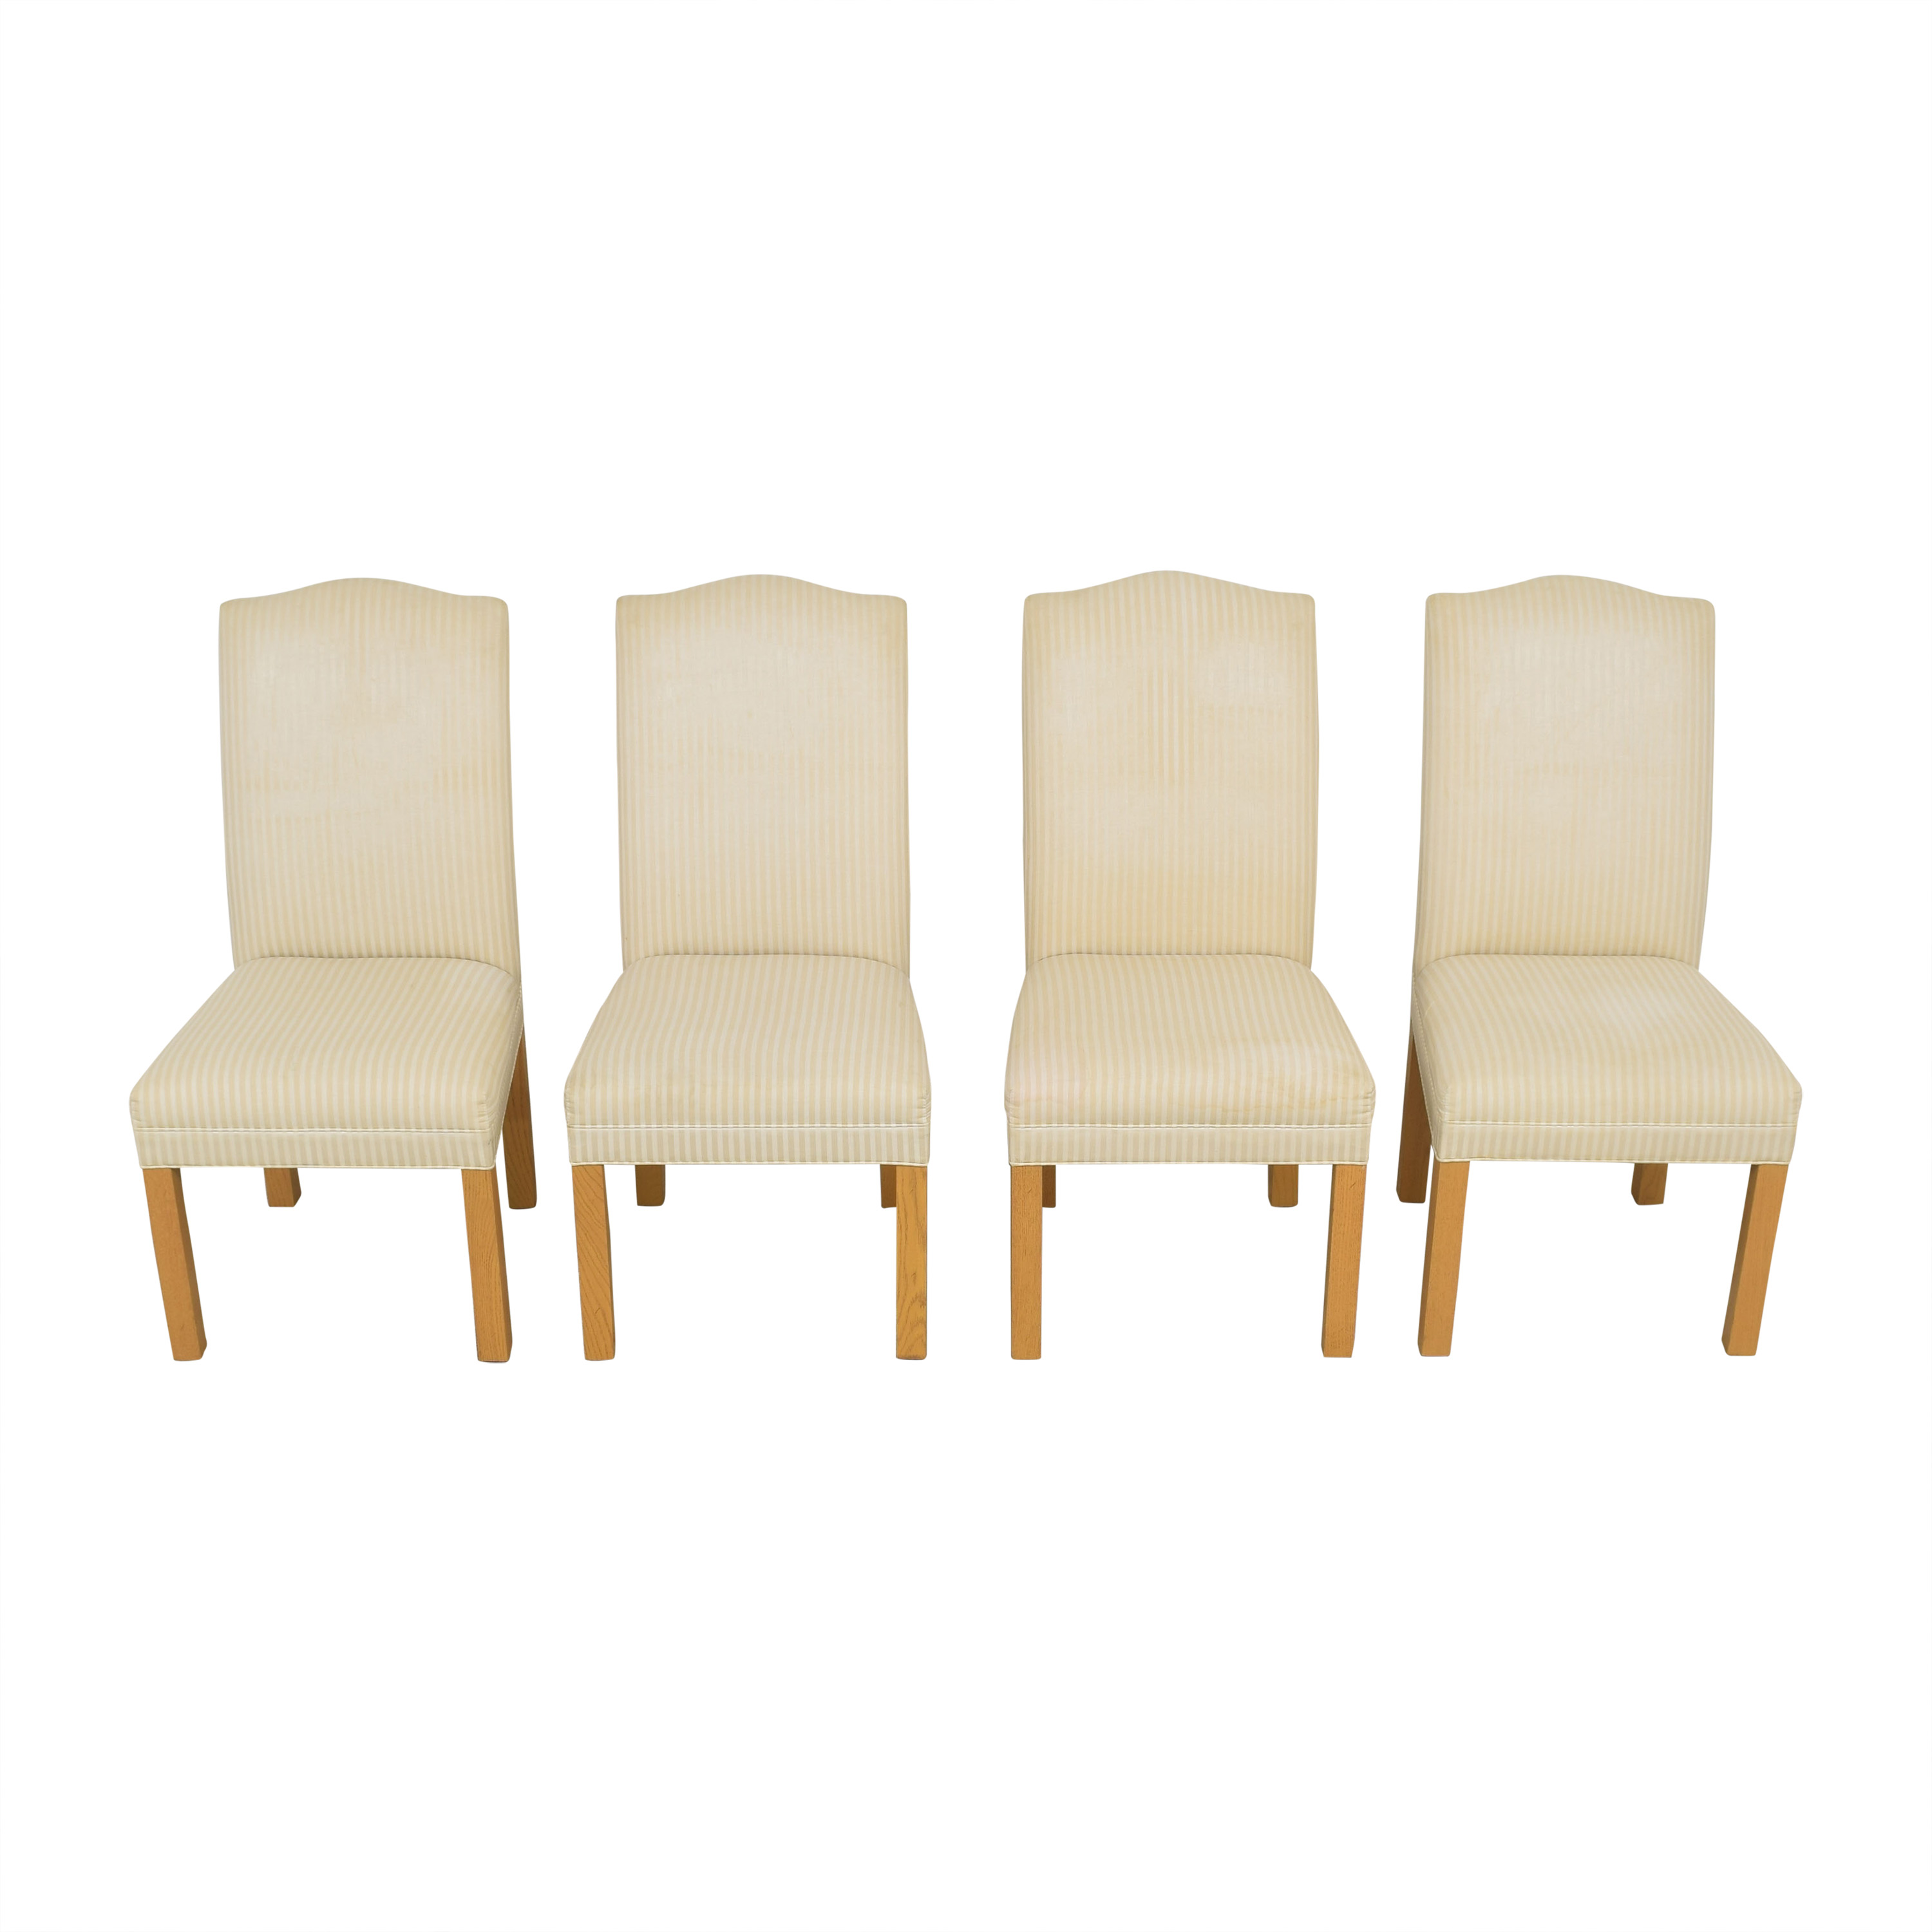 Lane Furniture Lane Furniture Upholstered Dining Side Chairs used